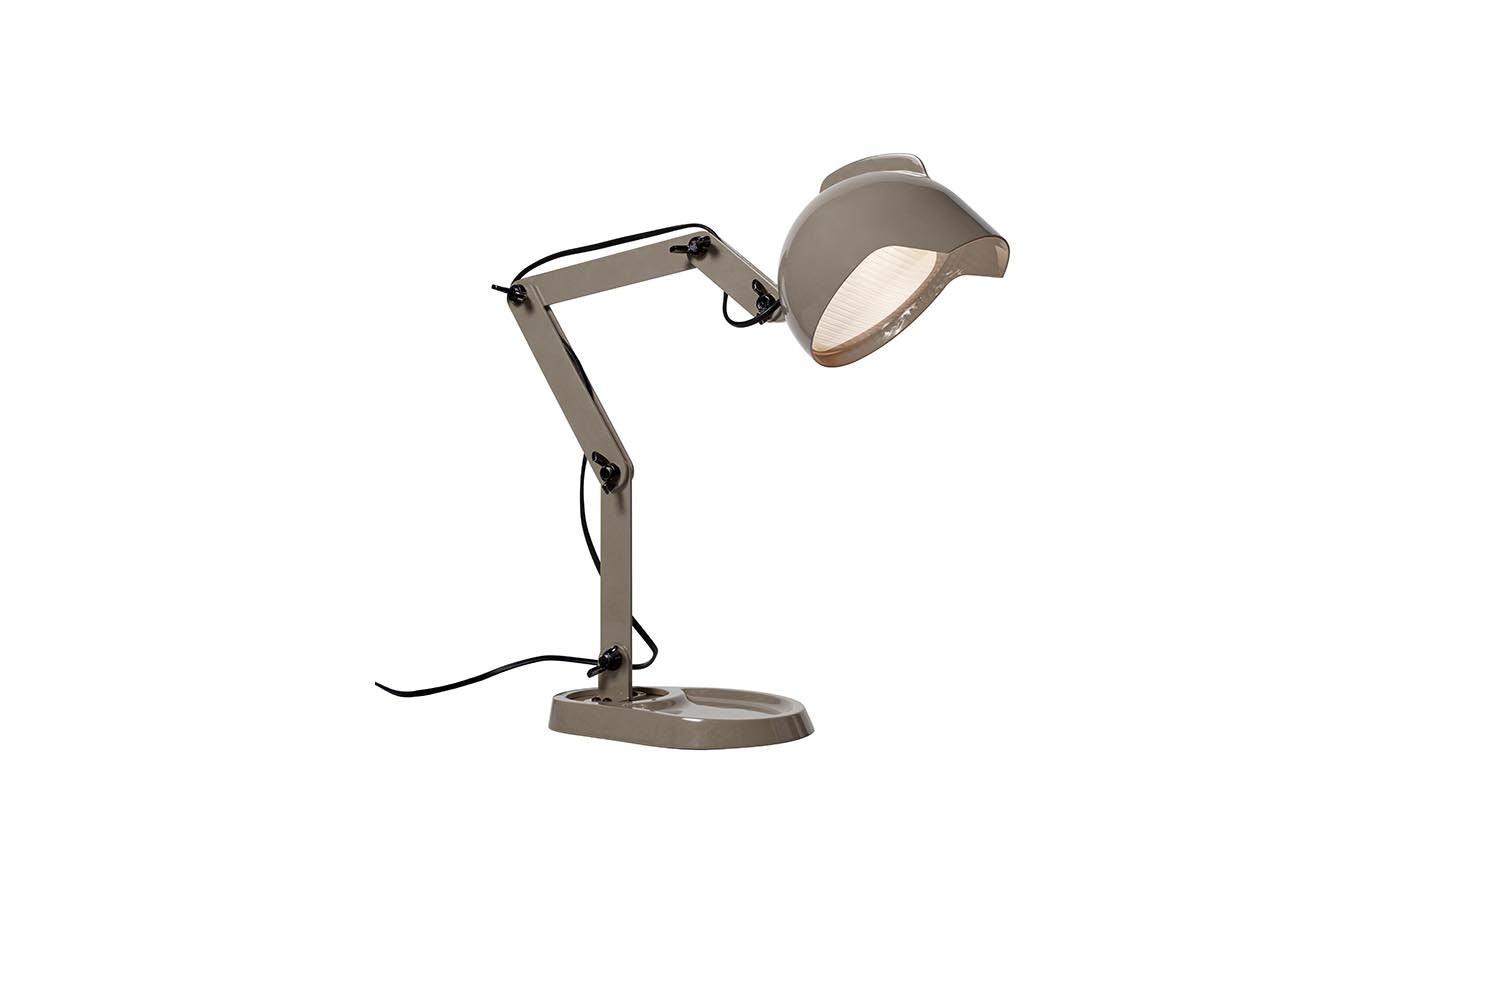 Duii Table Lamp by Successful Living from DIESEL for Foscarini